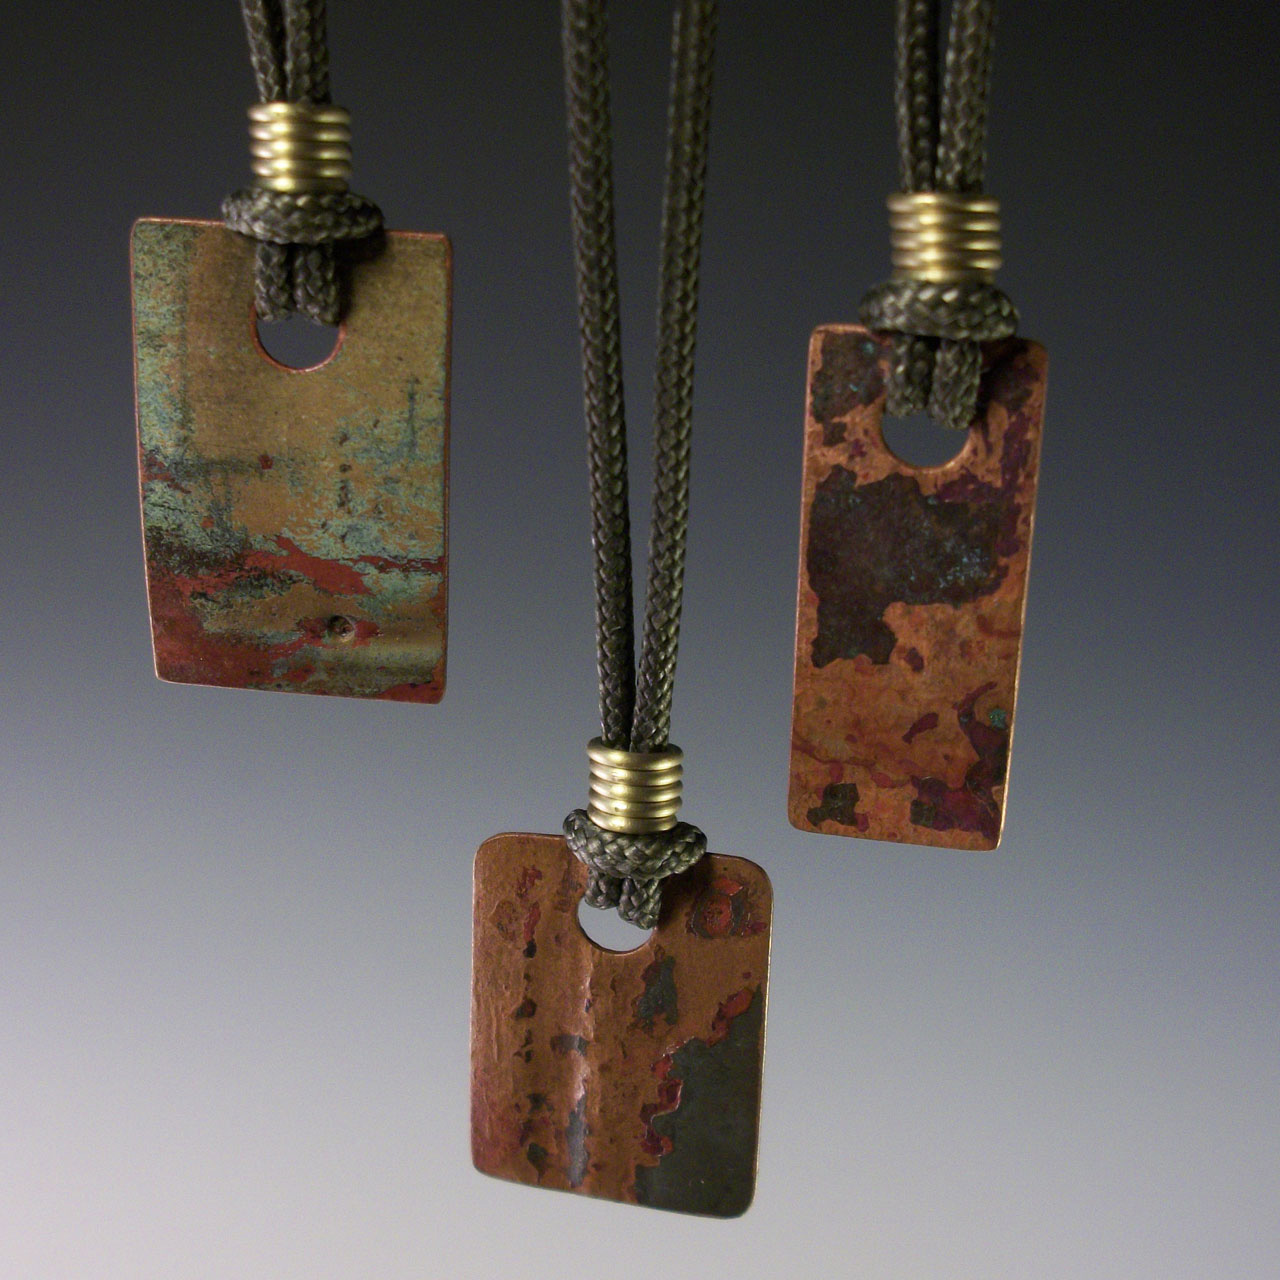 Little Tidepools Necklace by Mckenna Hallett group shot of three